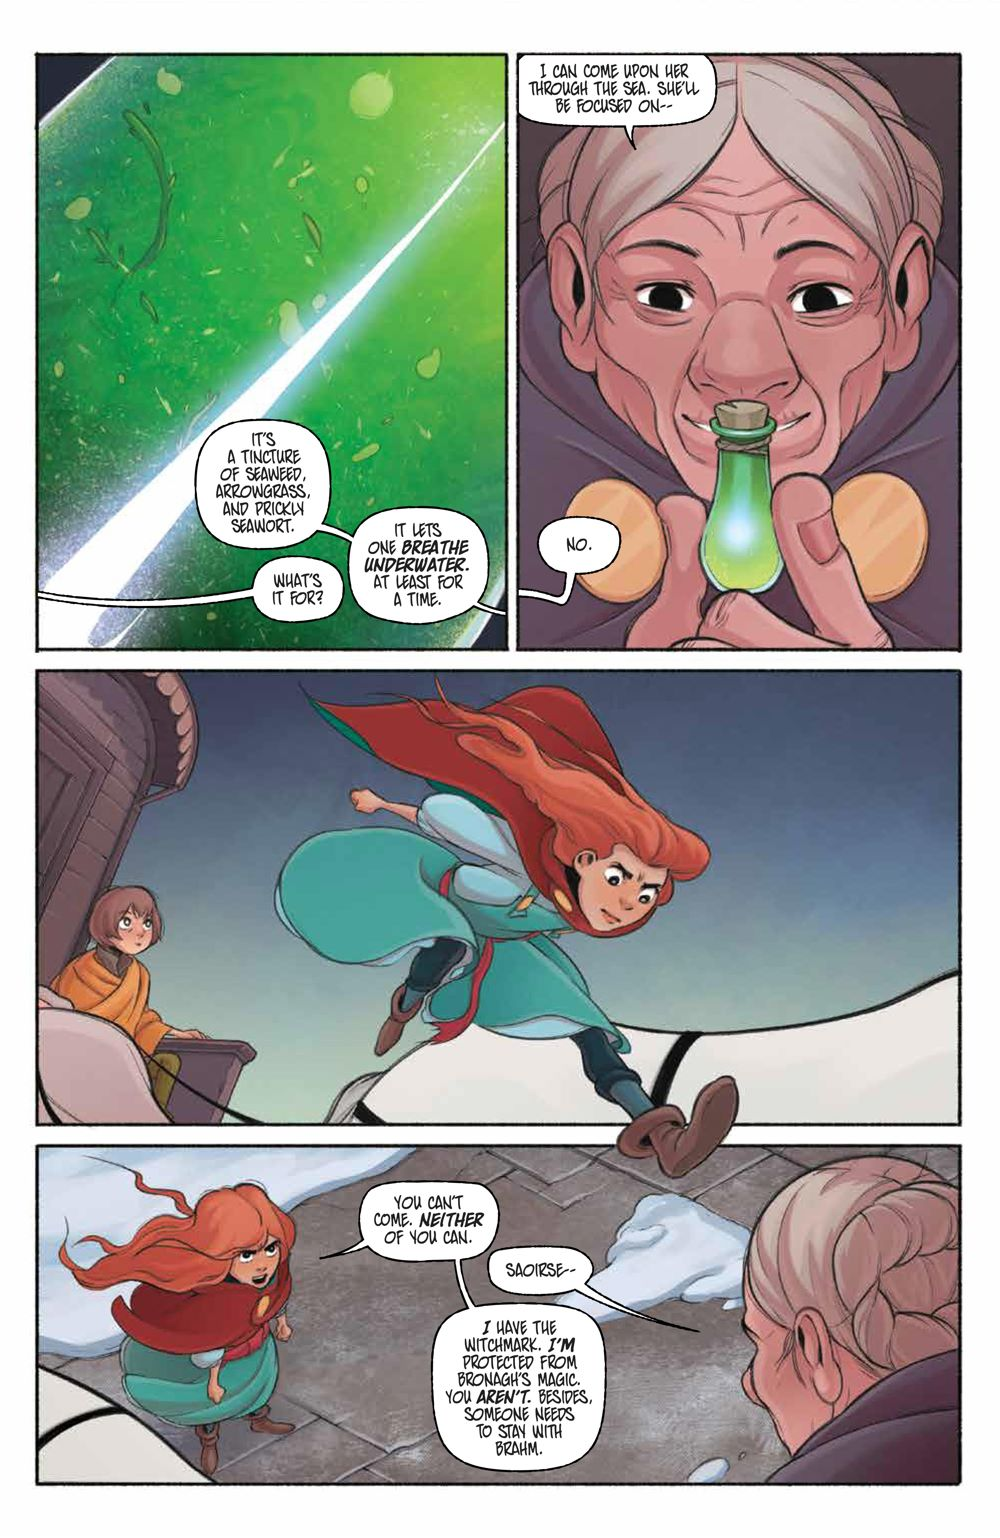 LastWitch_003_PRESS_5 ComicList Previews: THE LAST WITCH #3 (OF 5)